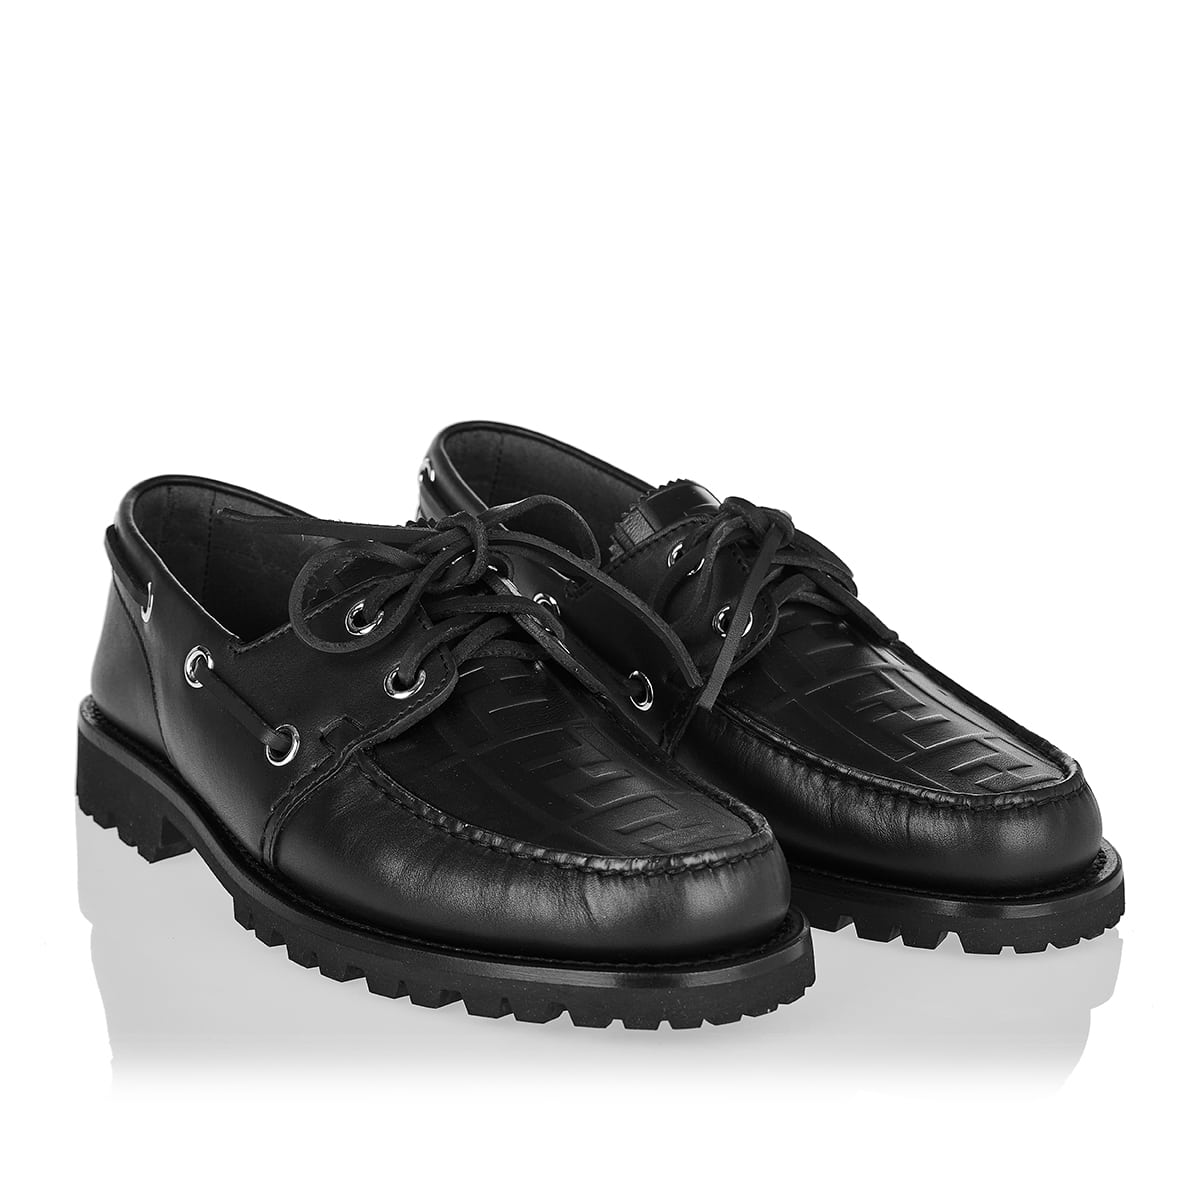 FF leather boat shoes